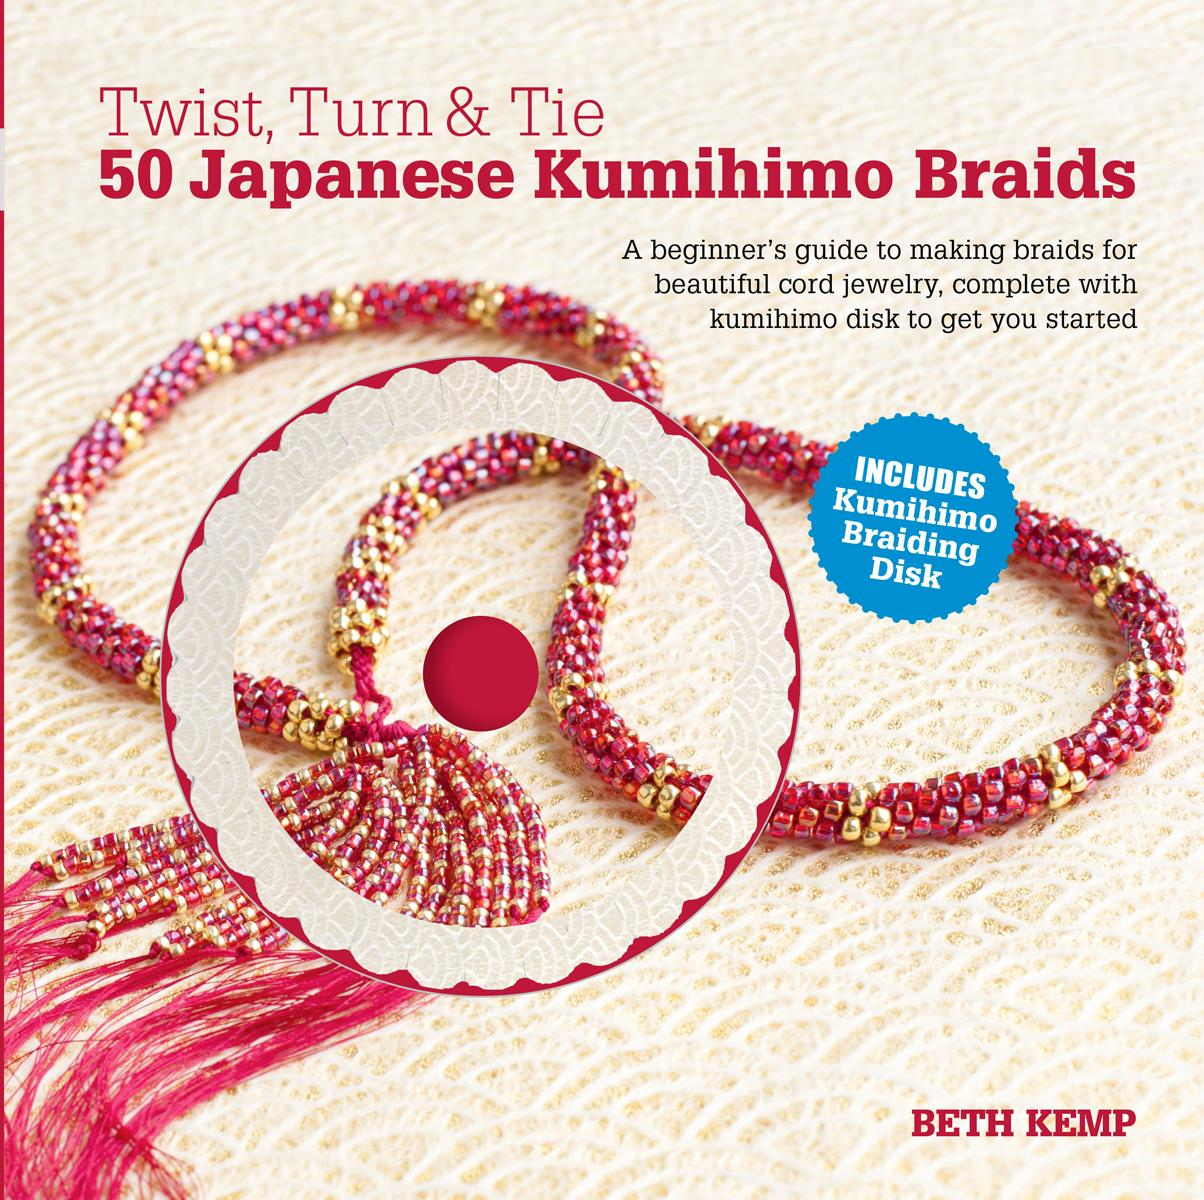 Twist, Turn & Tie : 50 Japanese Kumihimo Braids